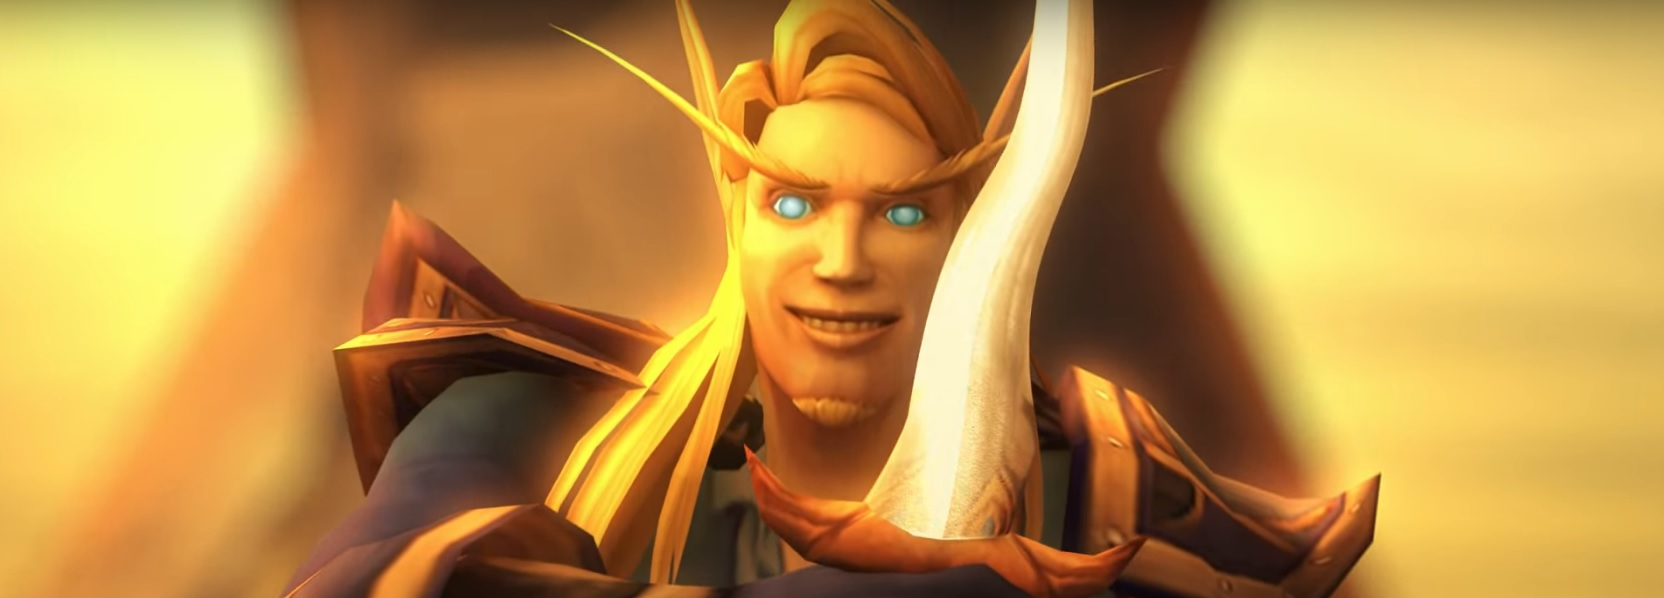 WoW High Elf Grinning